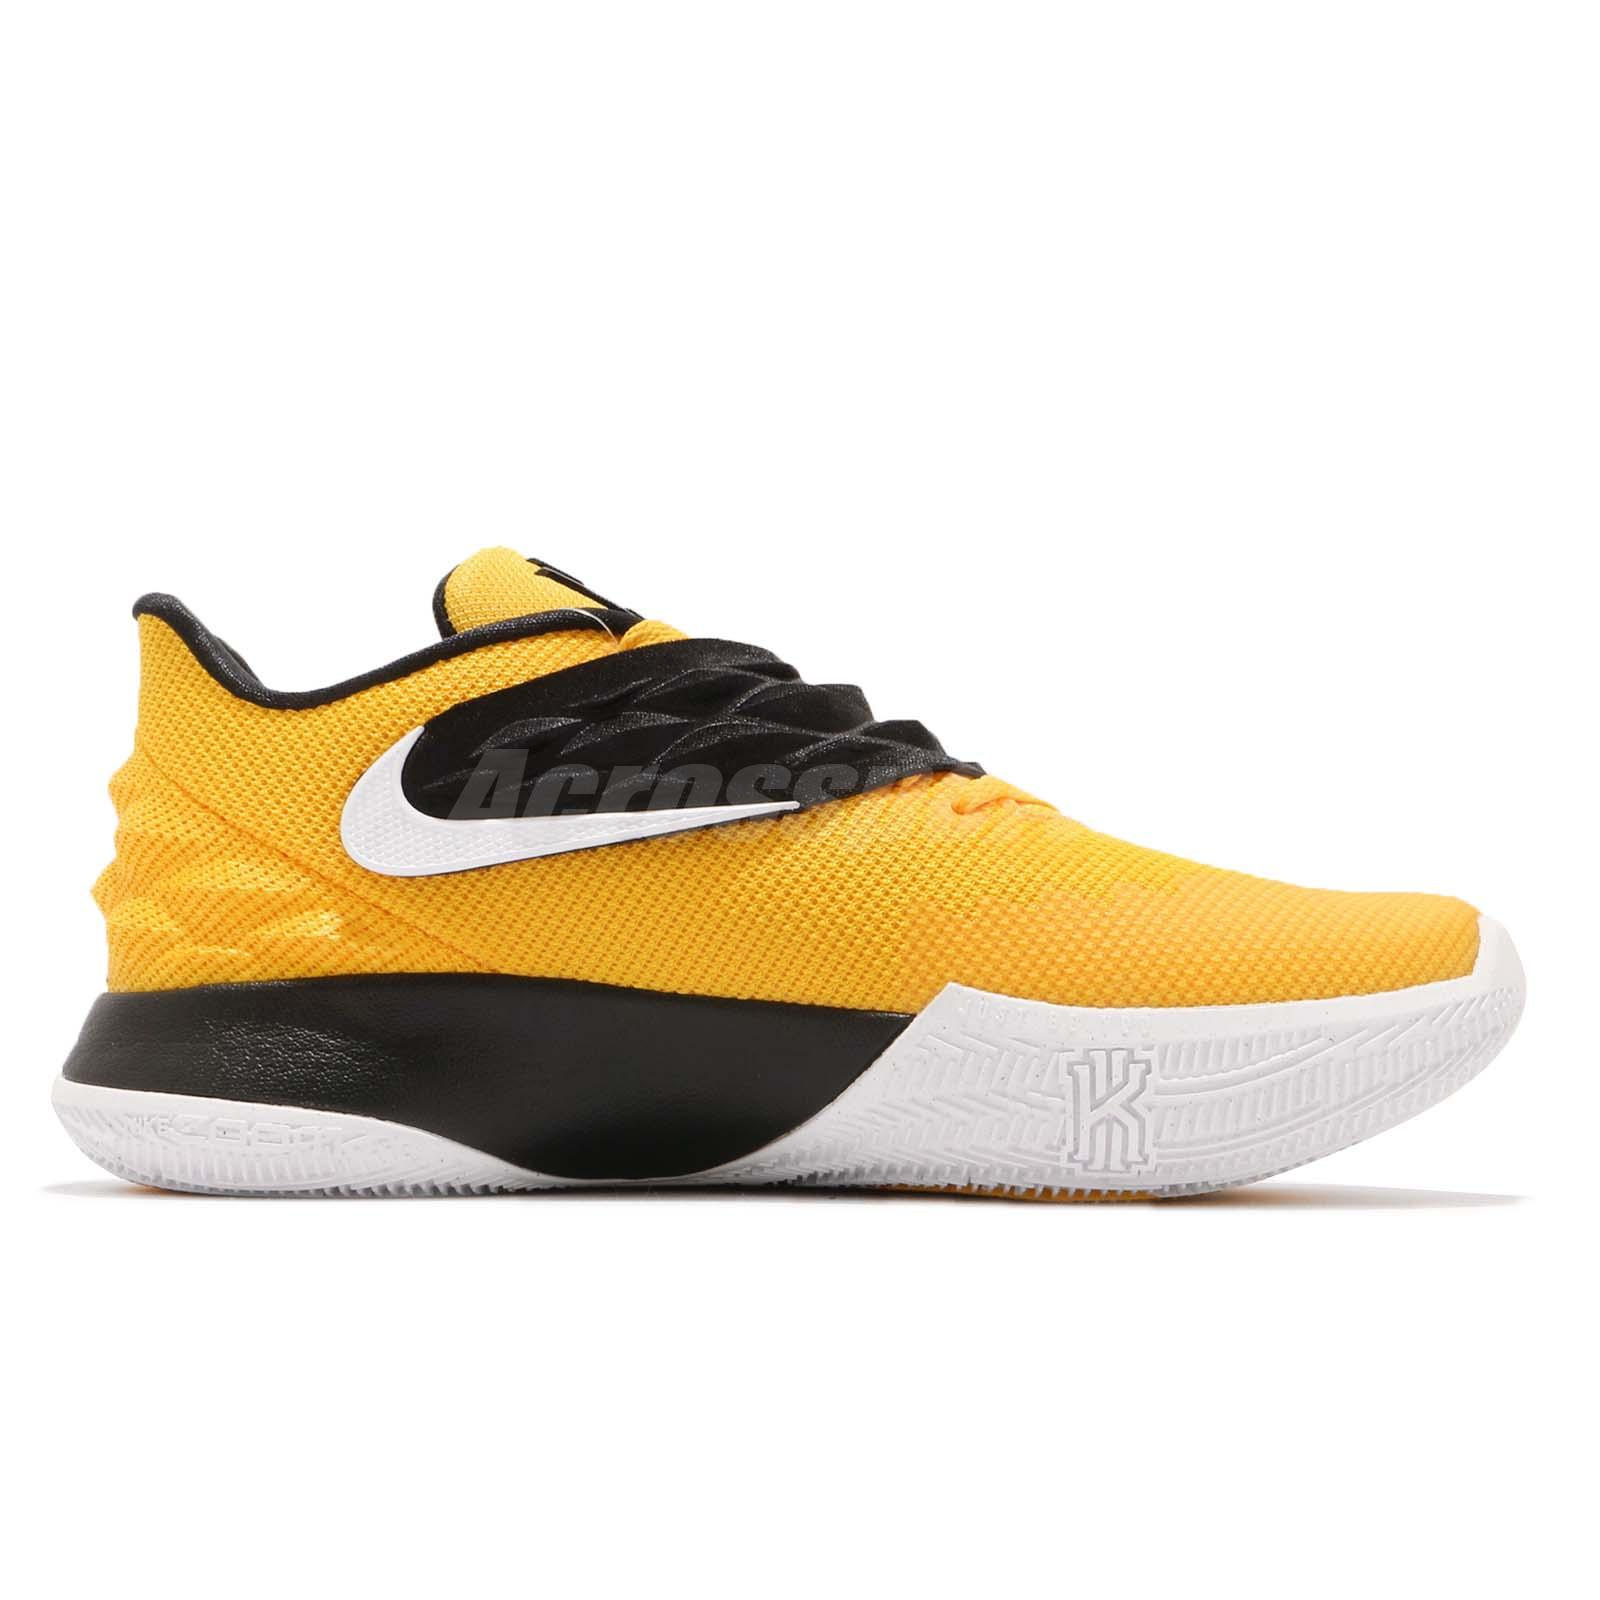 1bb6a1ead9cc Details about Nike Kyrie 1 Low EP Irving Yellow Black Men Basketball Shoes  Sneakers AO8980-700